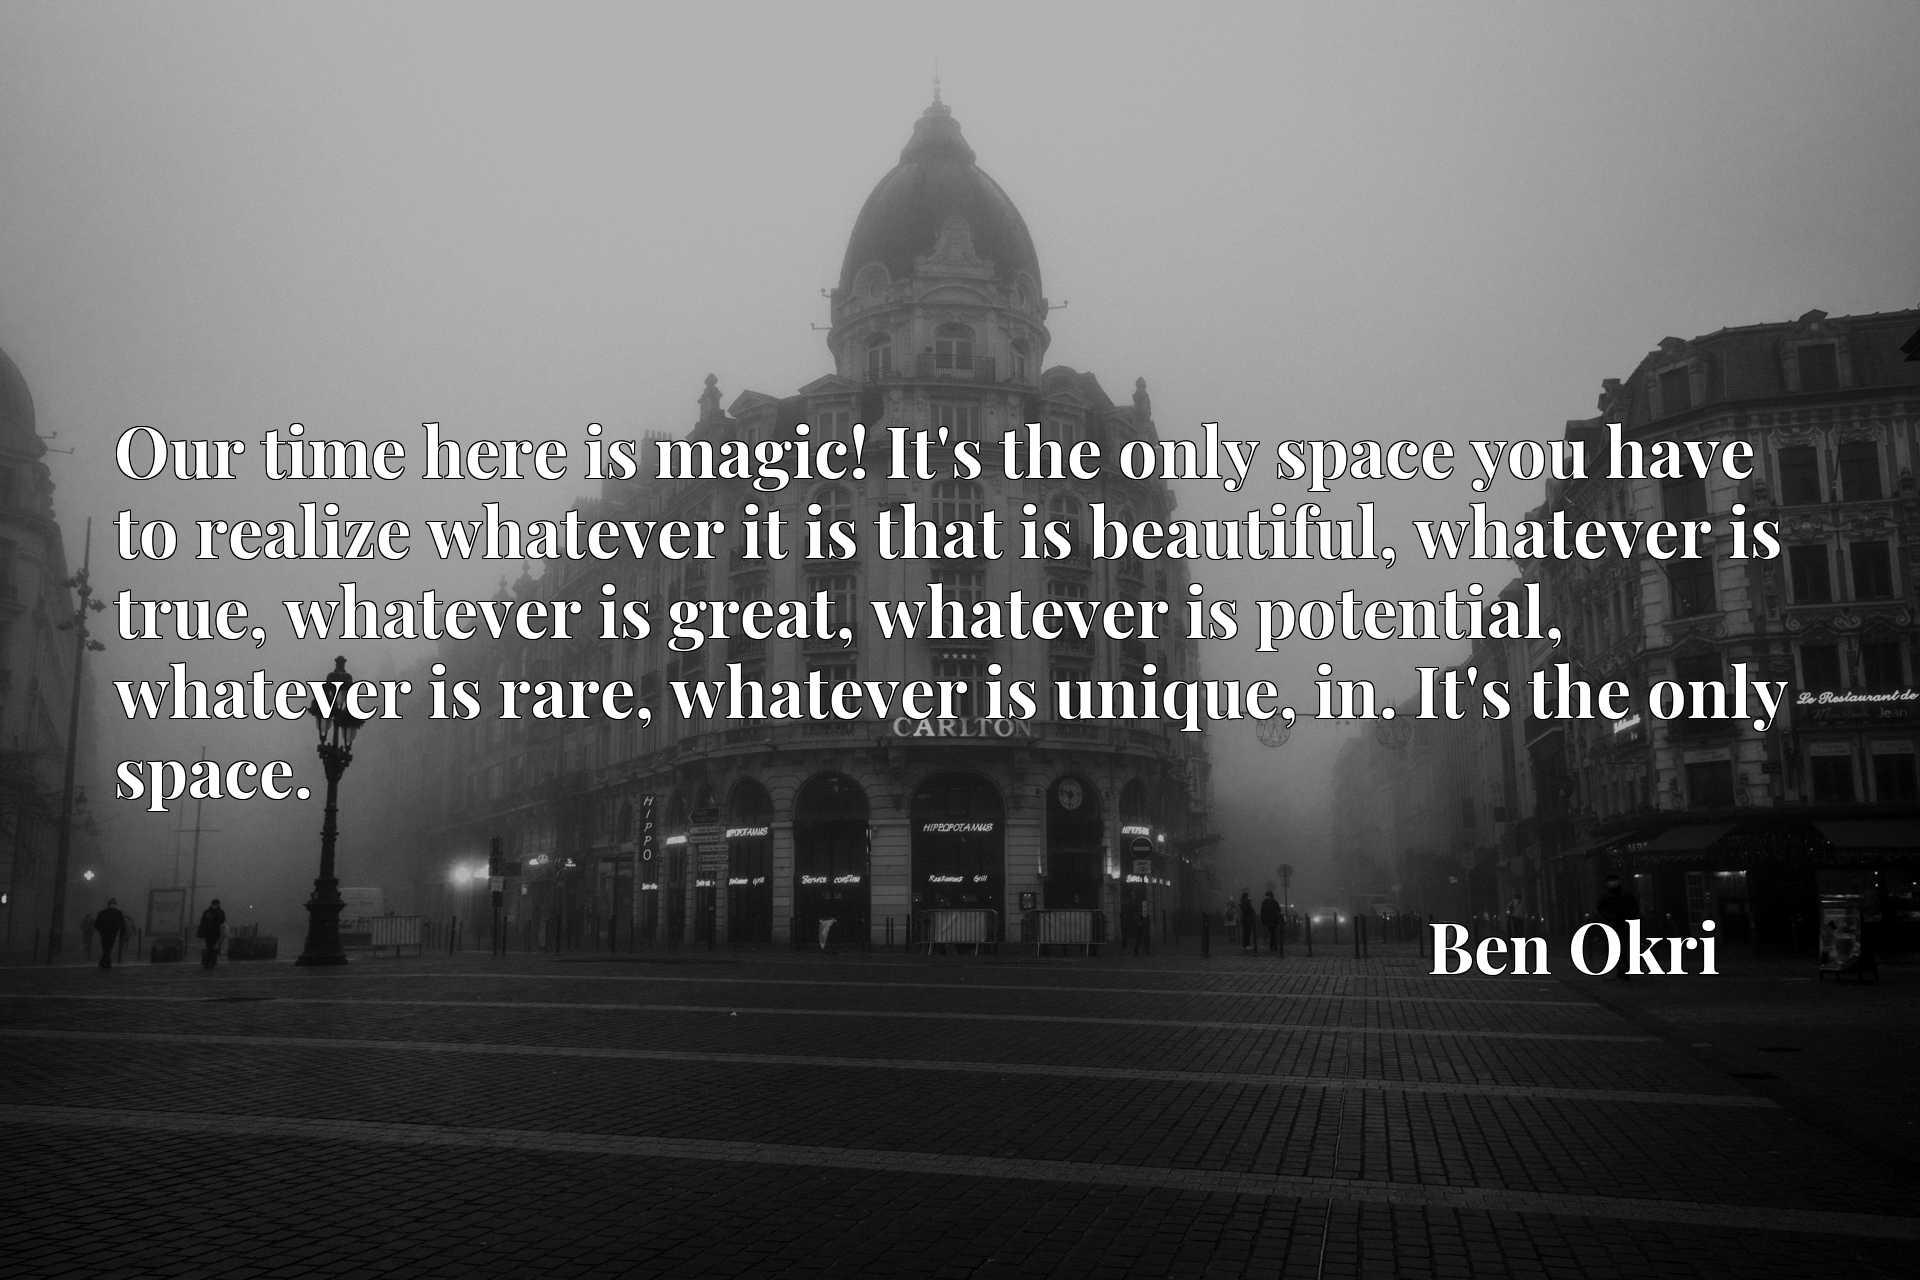 Our time here is magic! It's the only space you have to realize whatever it is that is beautiful, whatever is true, whatever is great, whatever is potential, whatever is rare, whatever is unique, in. It's the only space.